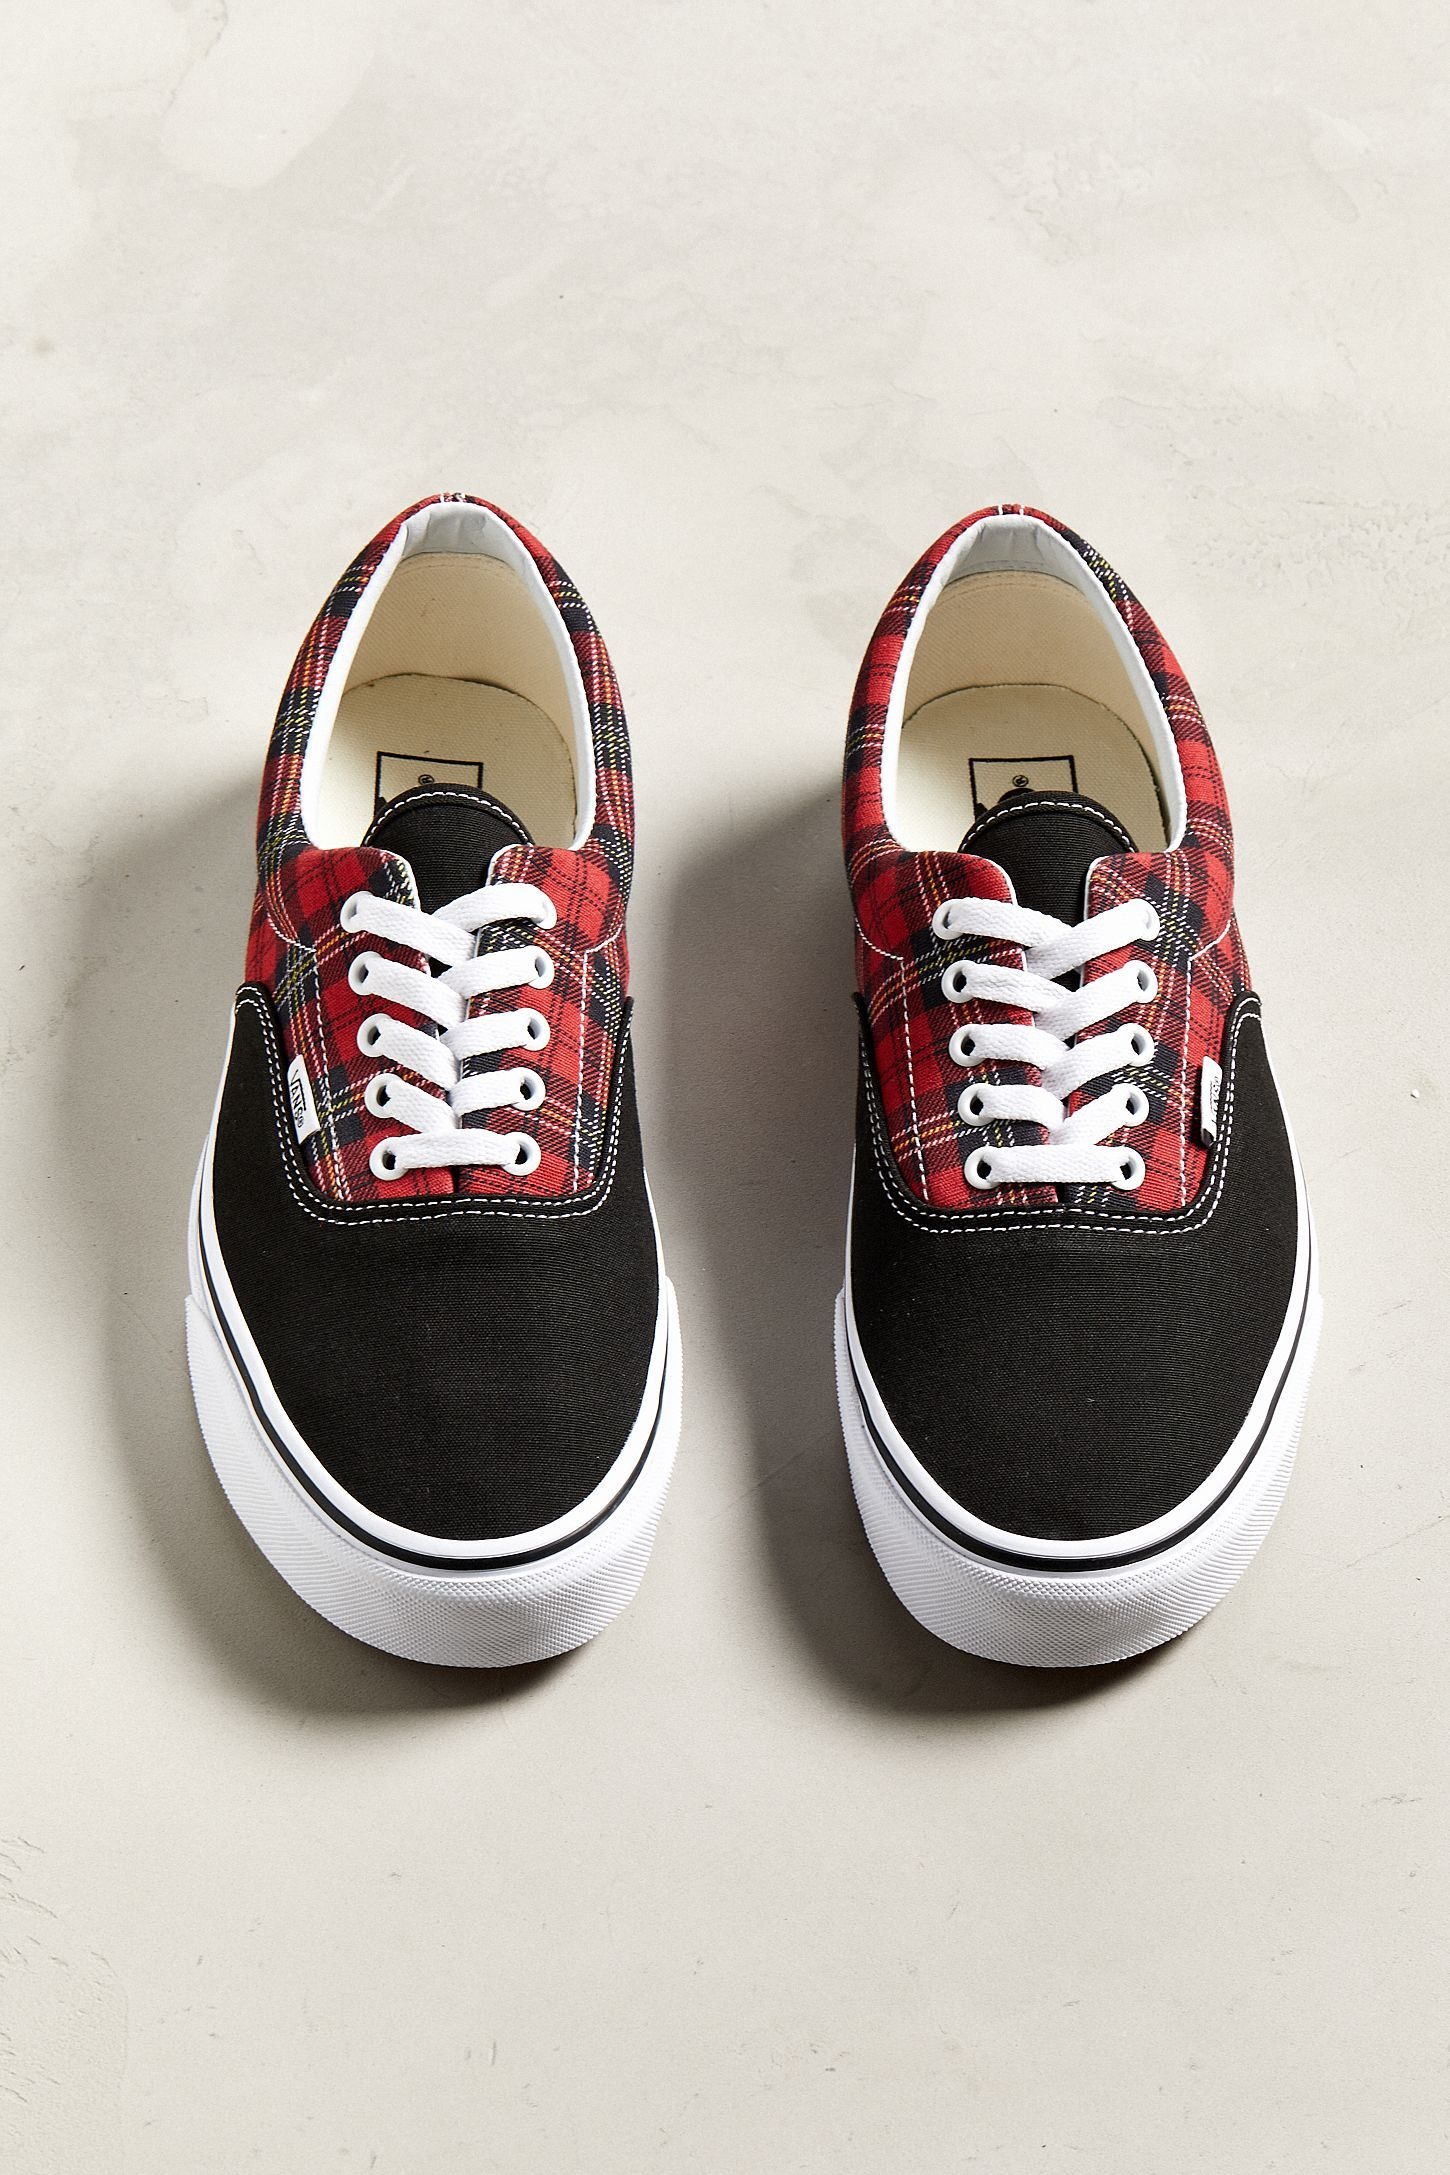 ea6400cad477 Slide View  5  Vans Era Tartan Plaid Sneaker